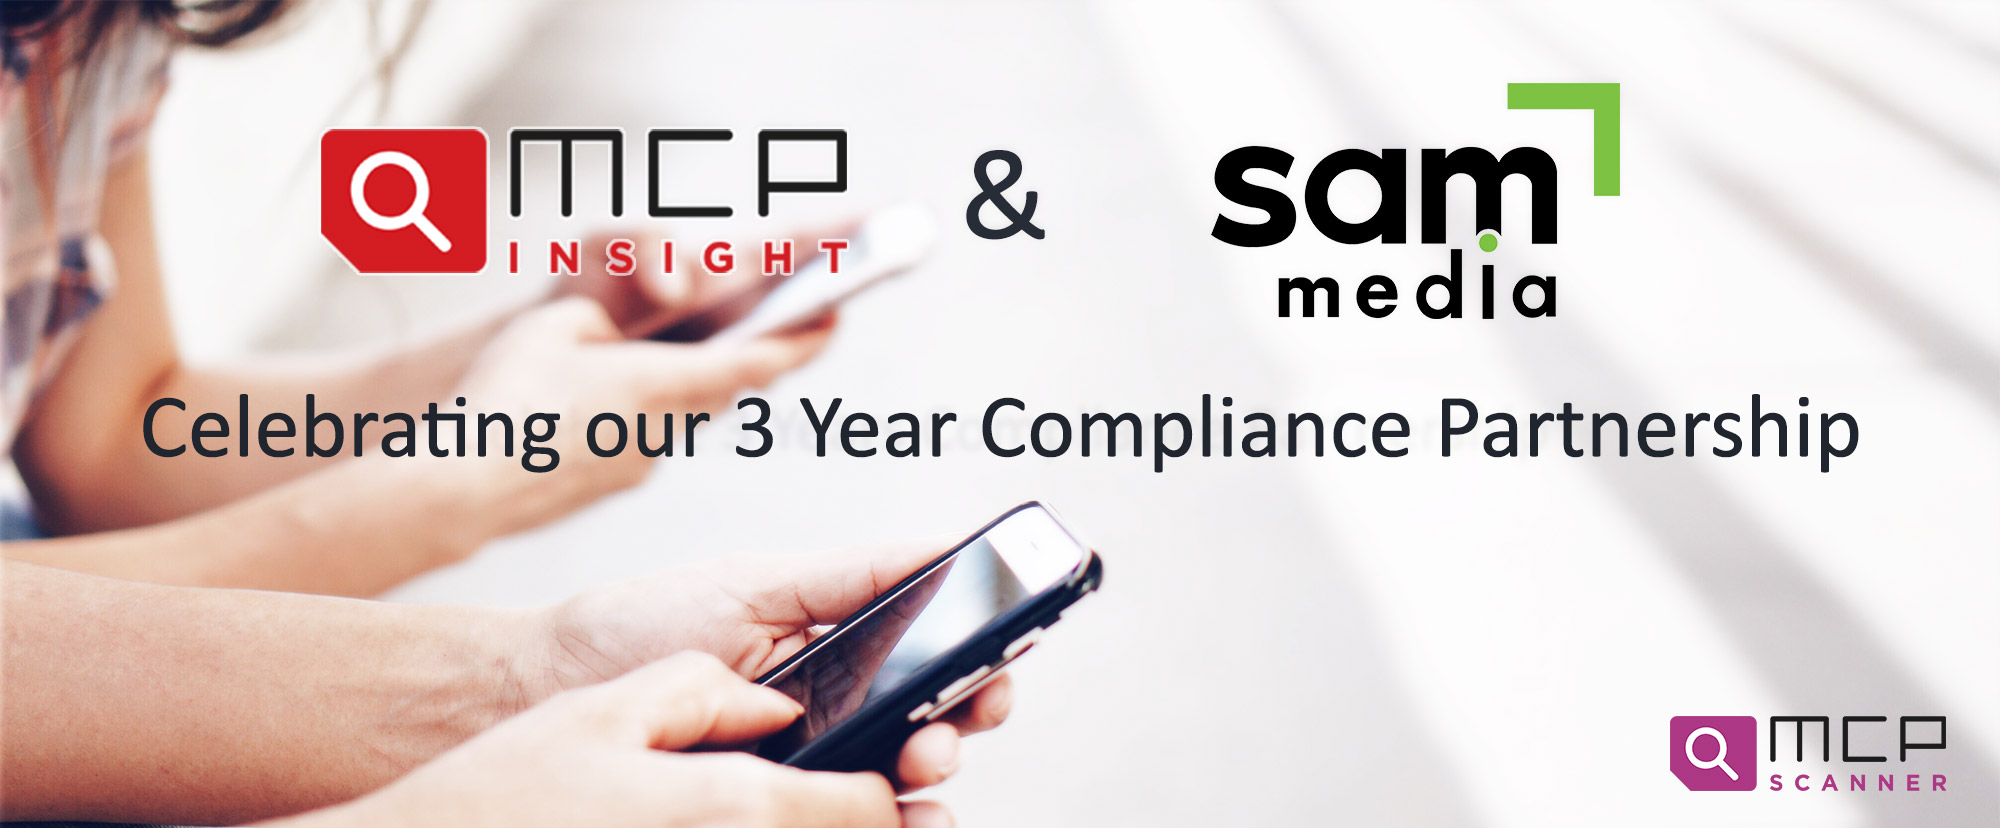 MCP Insight and Sam Media - celebrating our 3 year Compliance Partnership